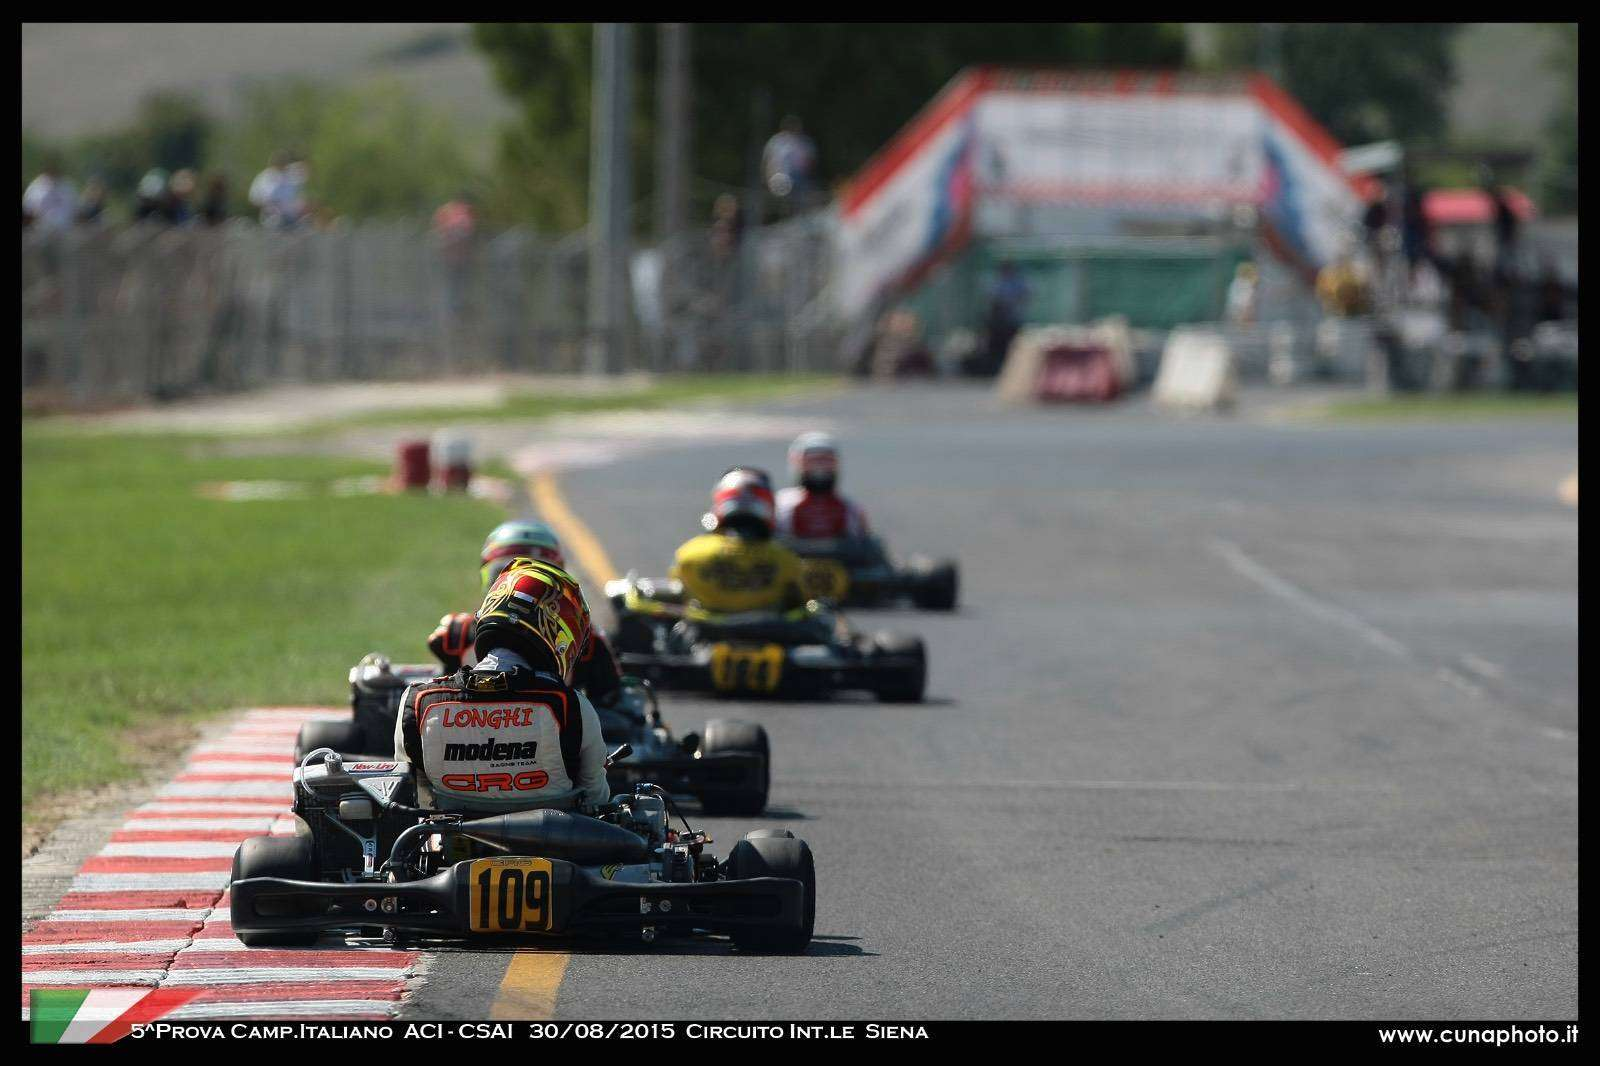 imaf-reasing-seats-karting-16